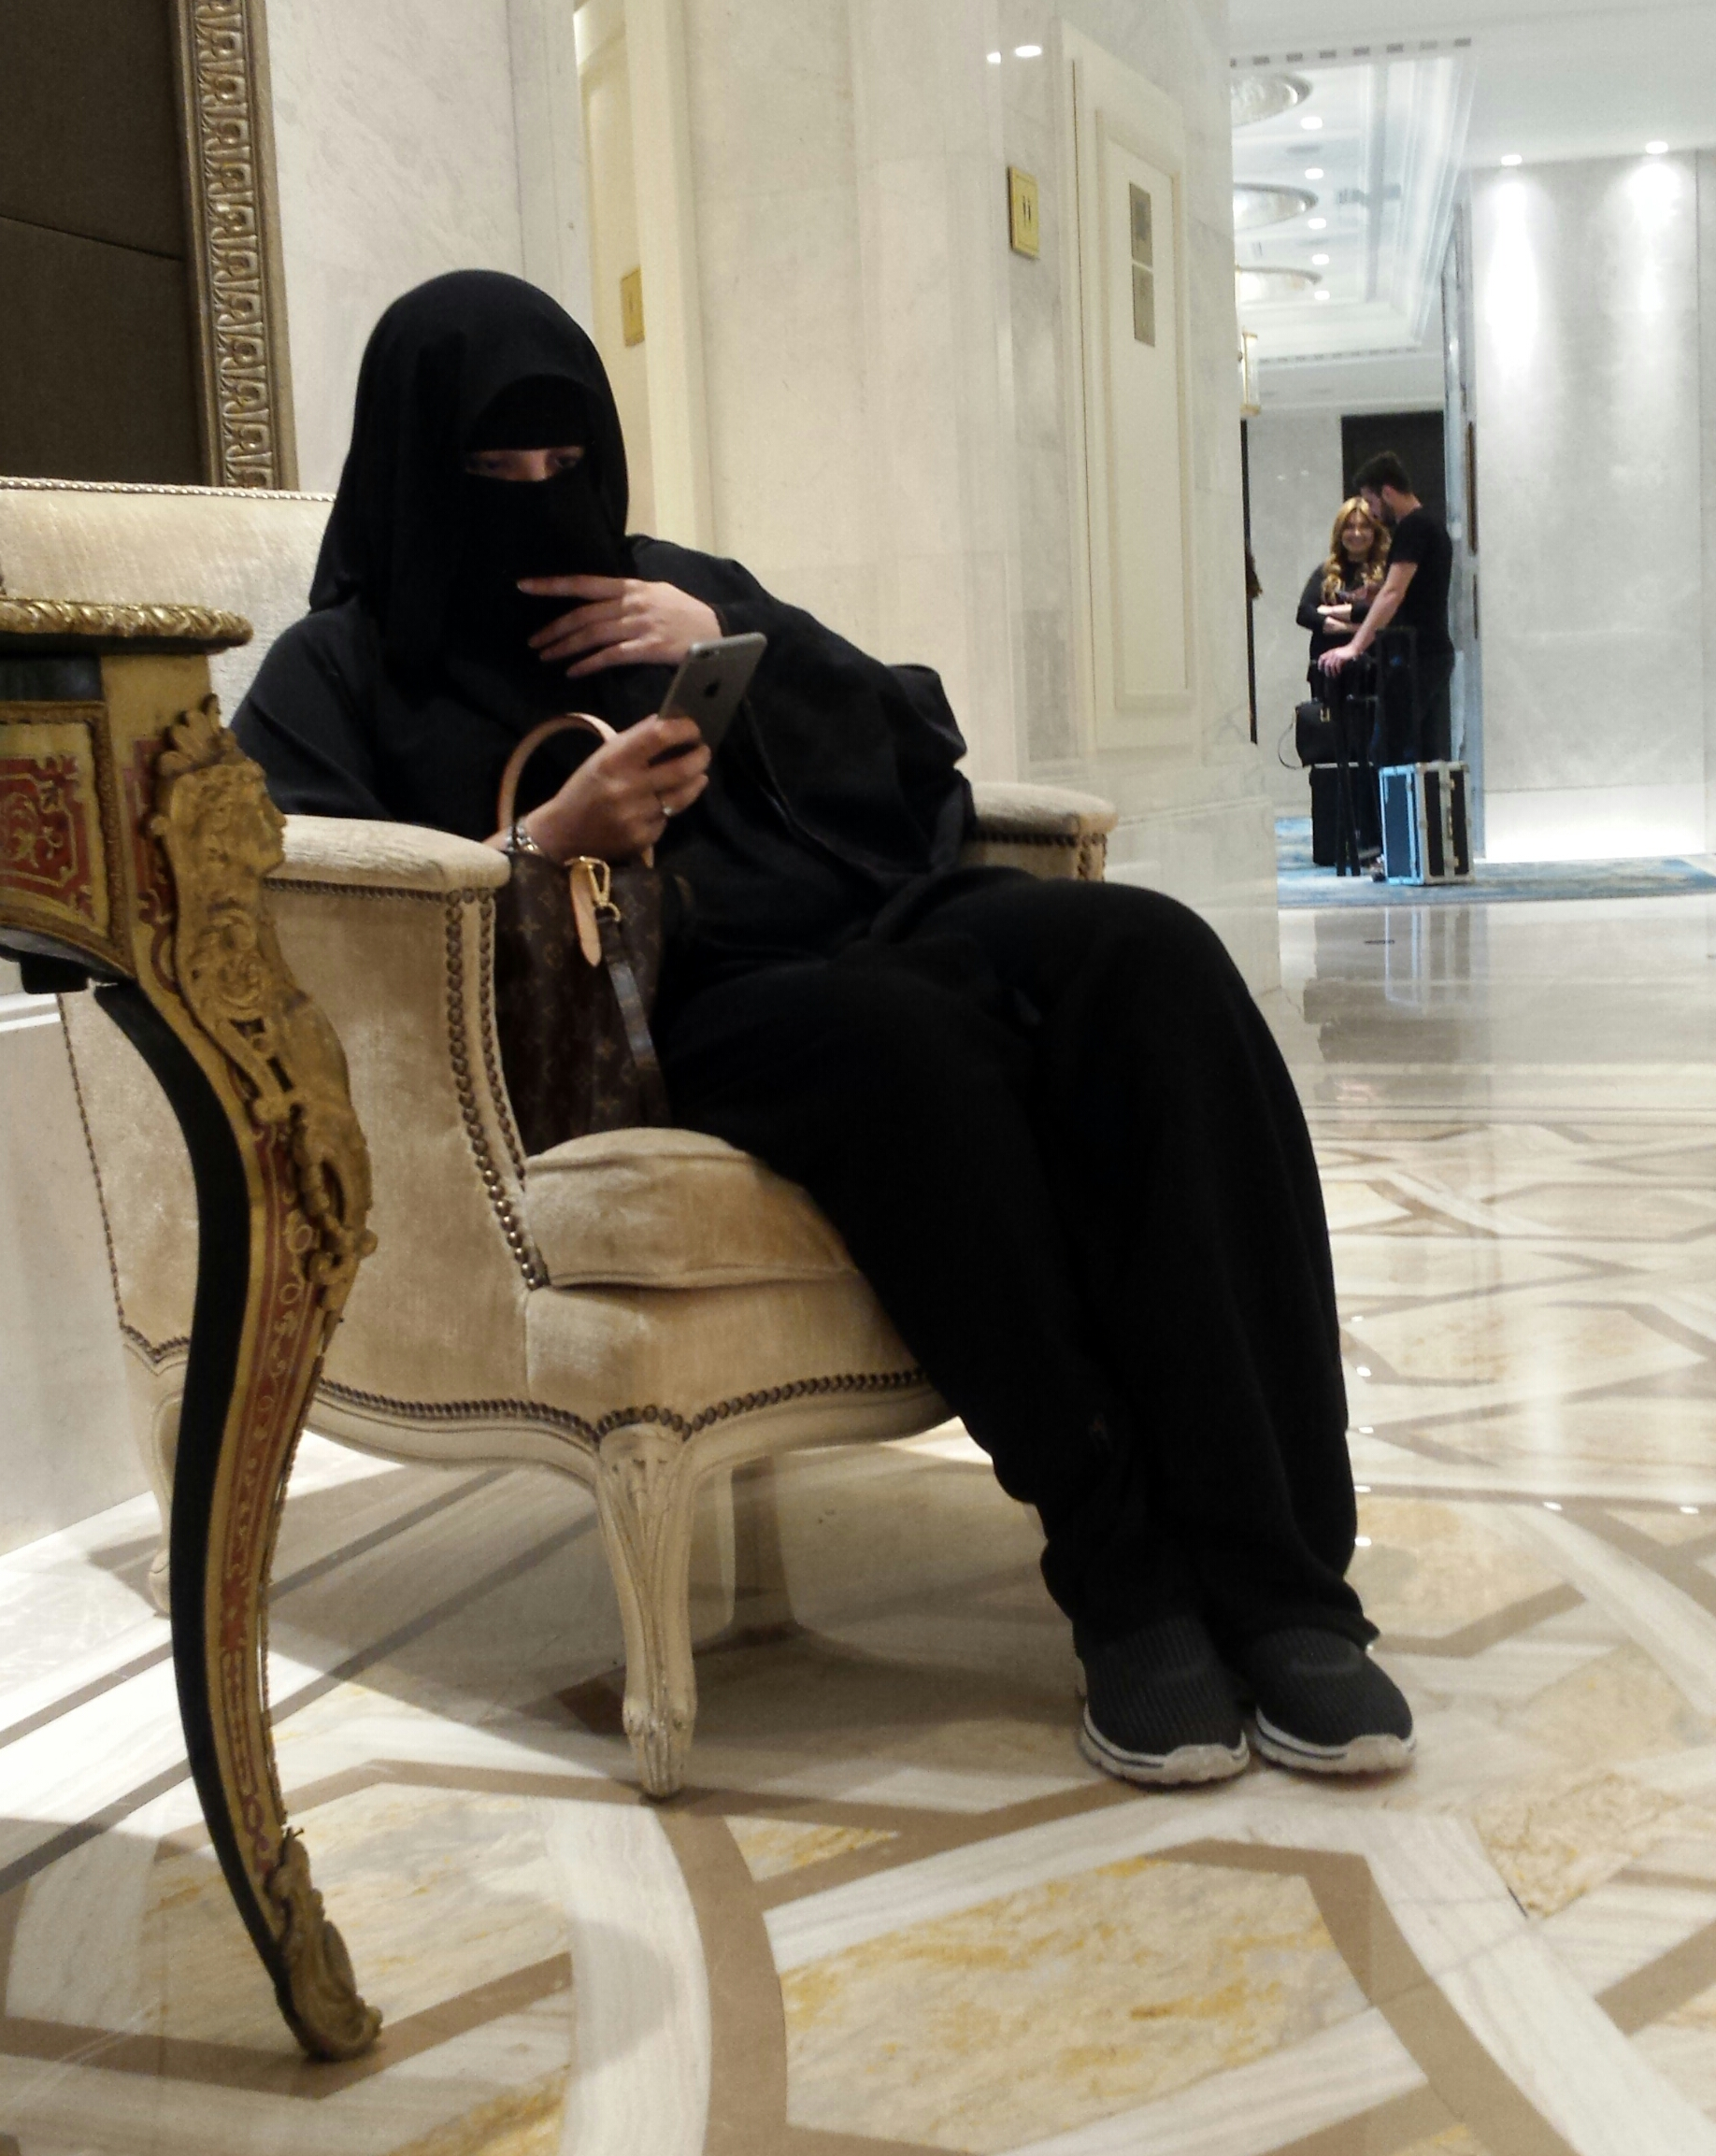 woman-in-burka-texting-shangri-la